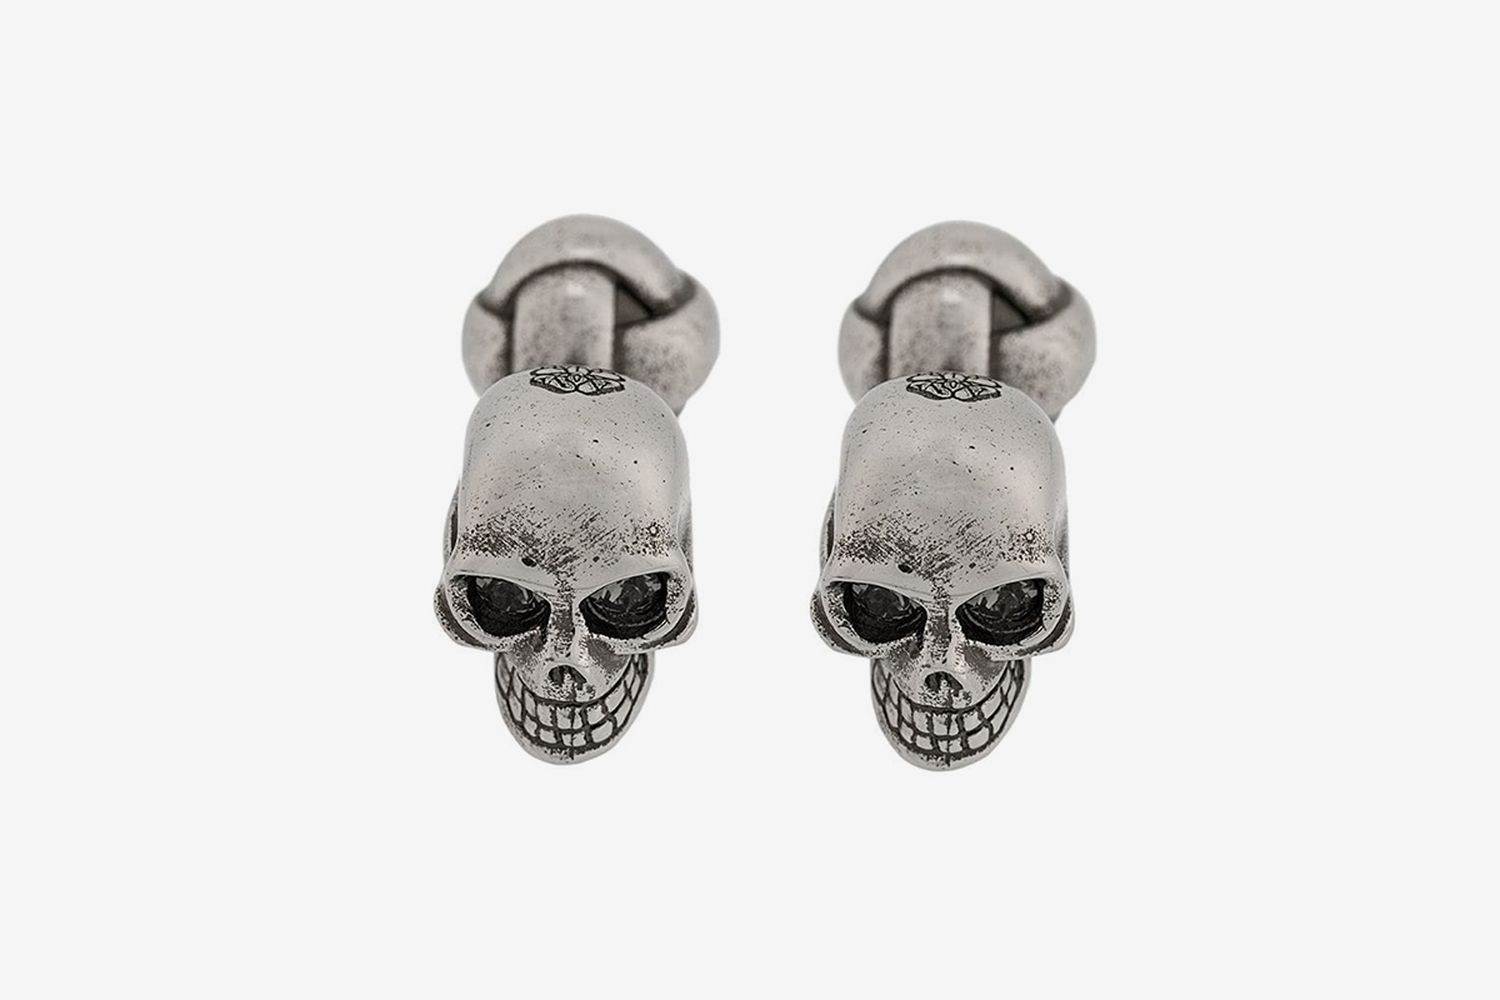 Engraved Skull Cufflinks